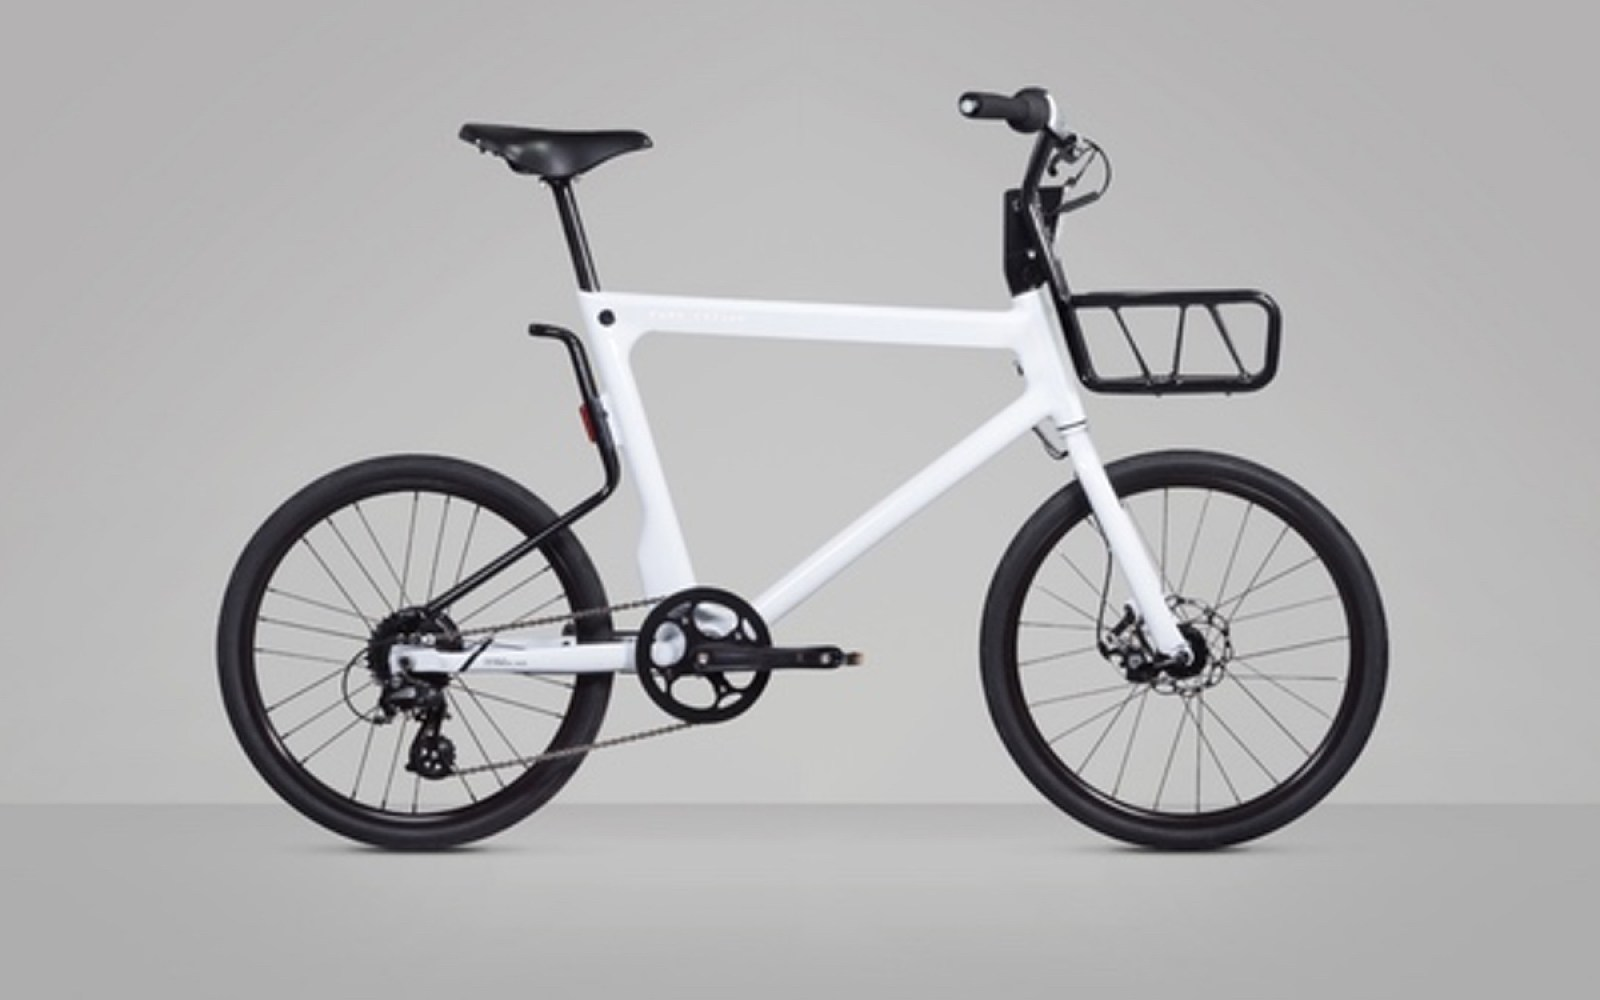 Volta eBike pairs stylish design with impressive range, fitness tracking features